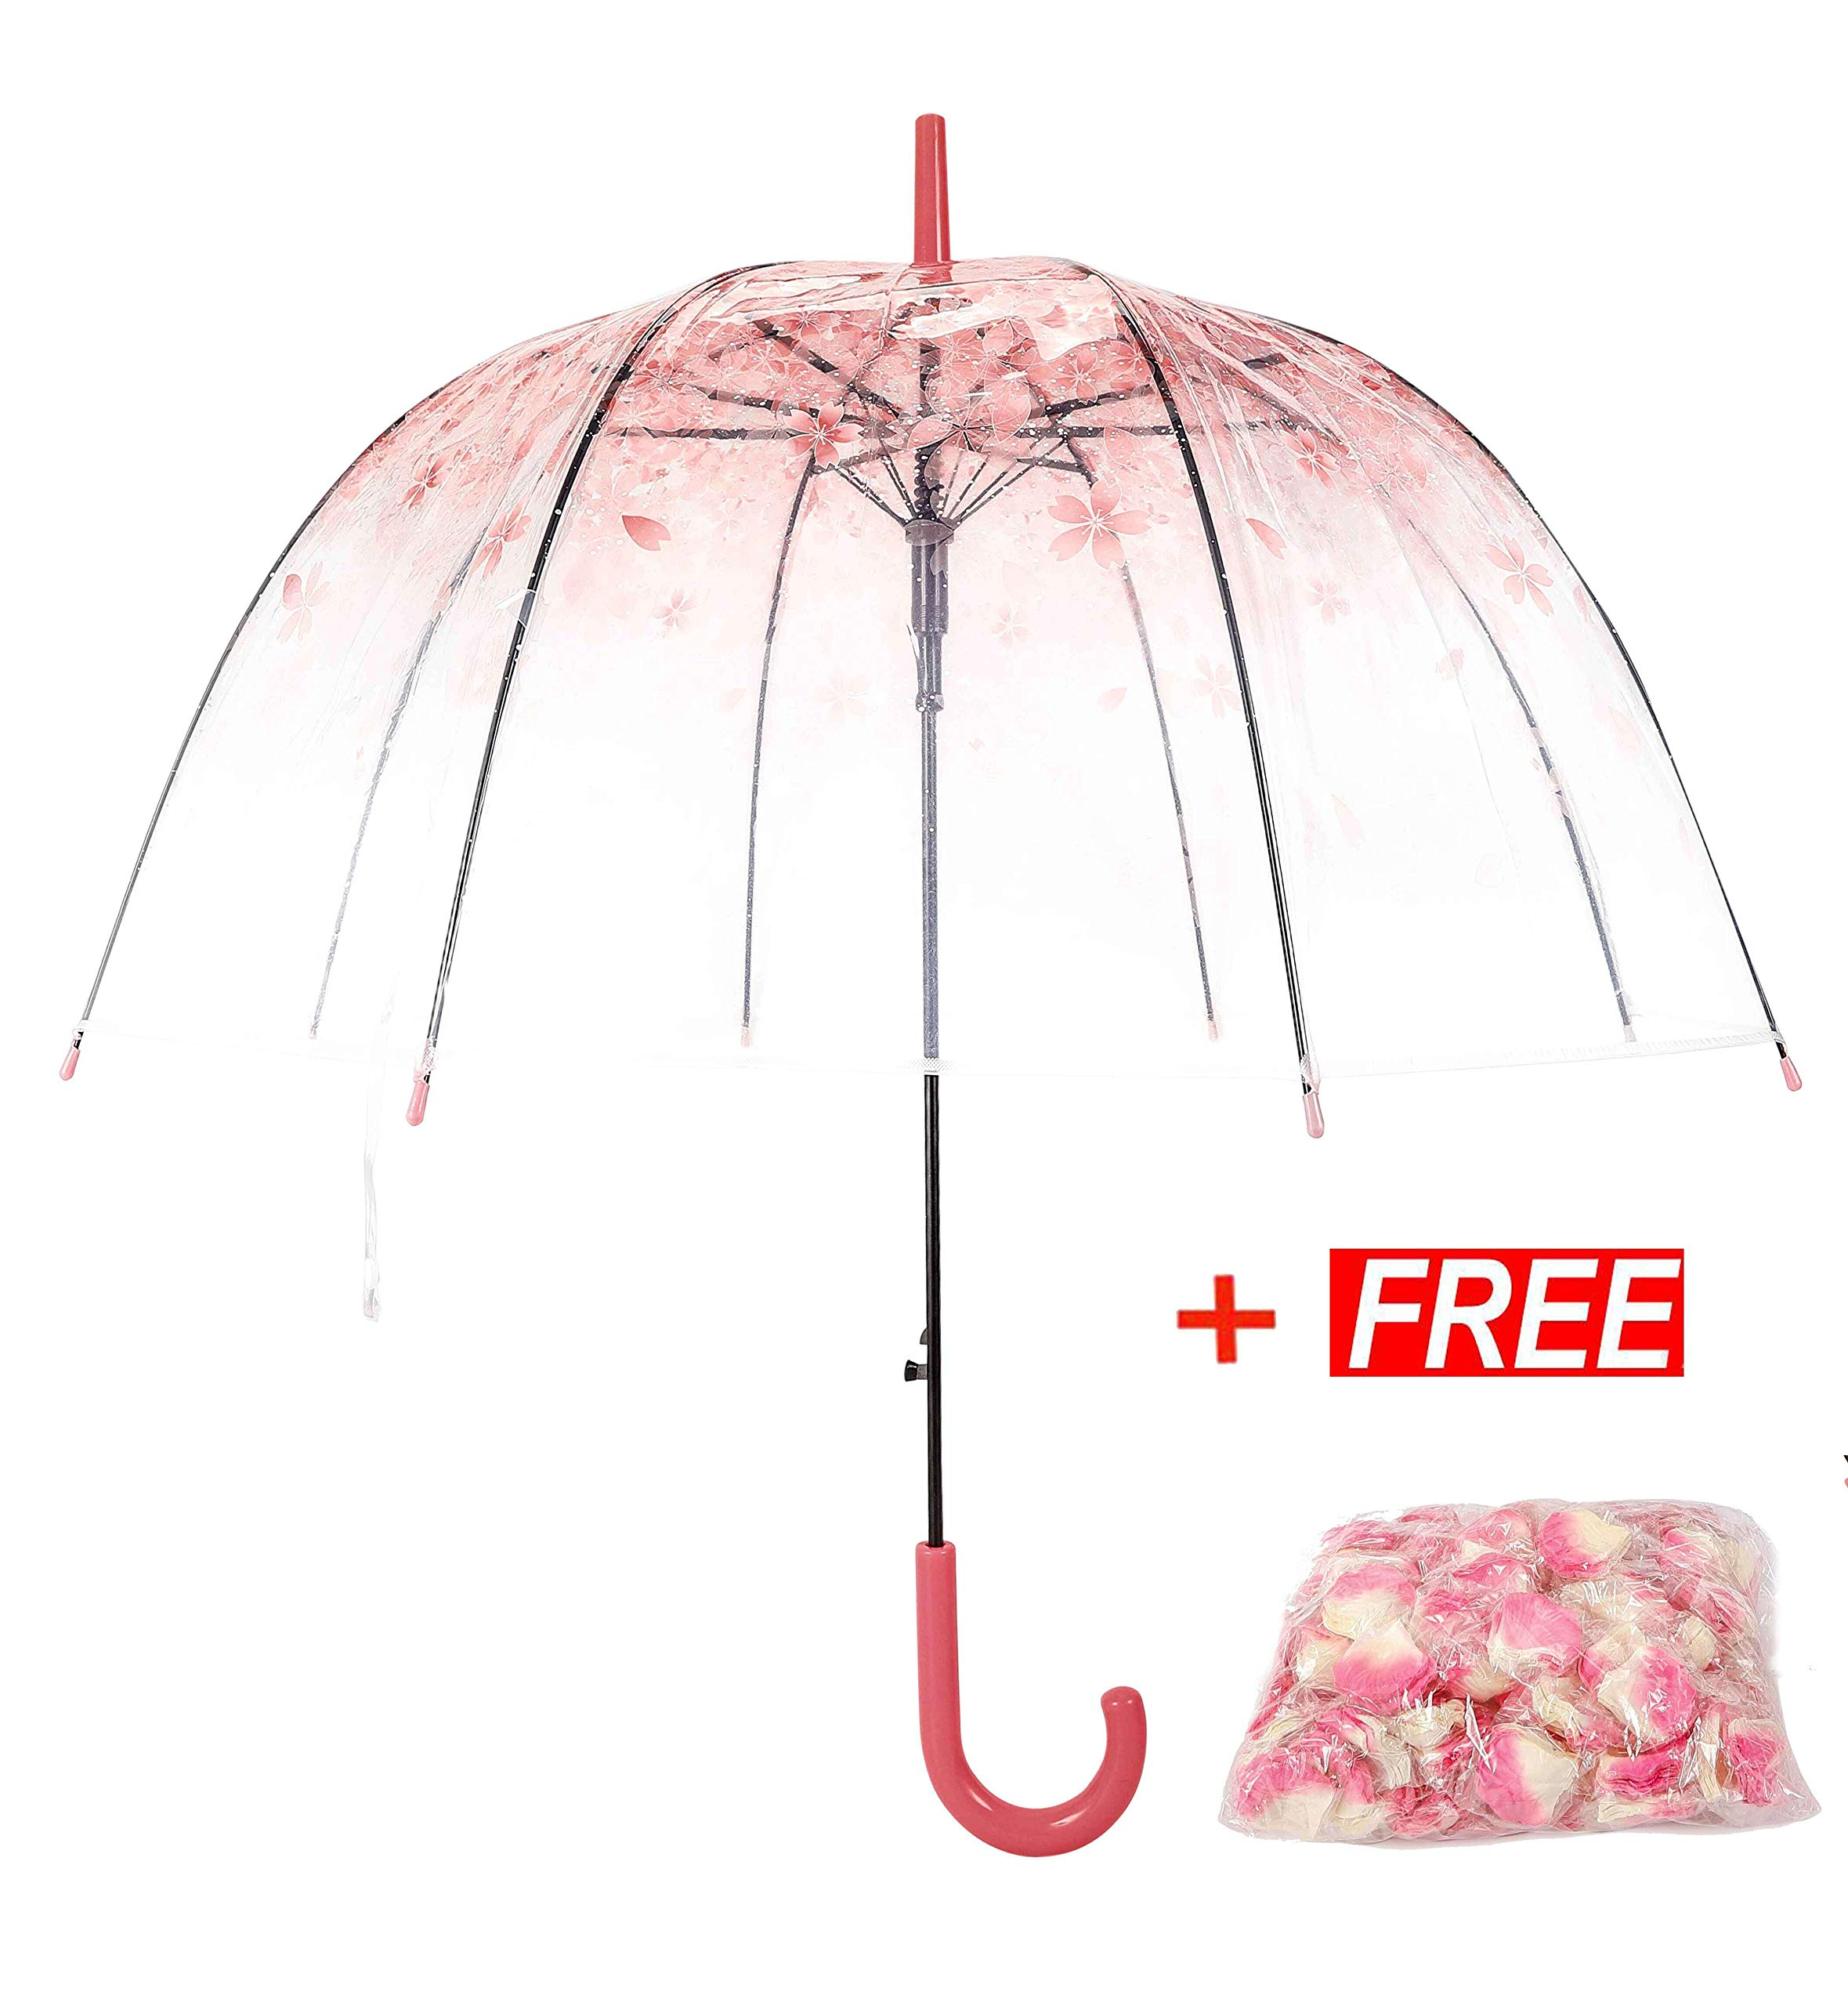 Tdogs Clear Umbrella with 100 Pcs Romantic Flowers,Bubble Dome Transparent Cherry Automatic Windproof Rain Umbrellas for Wedding